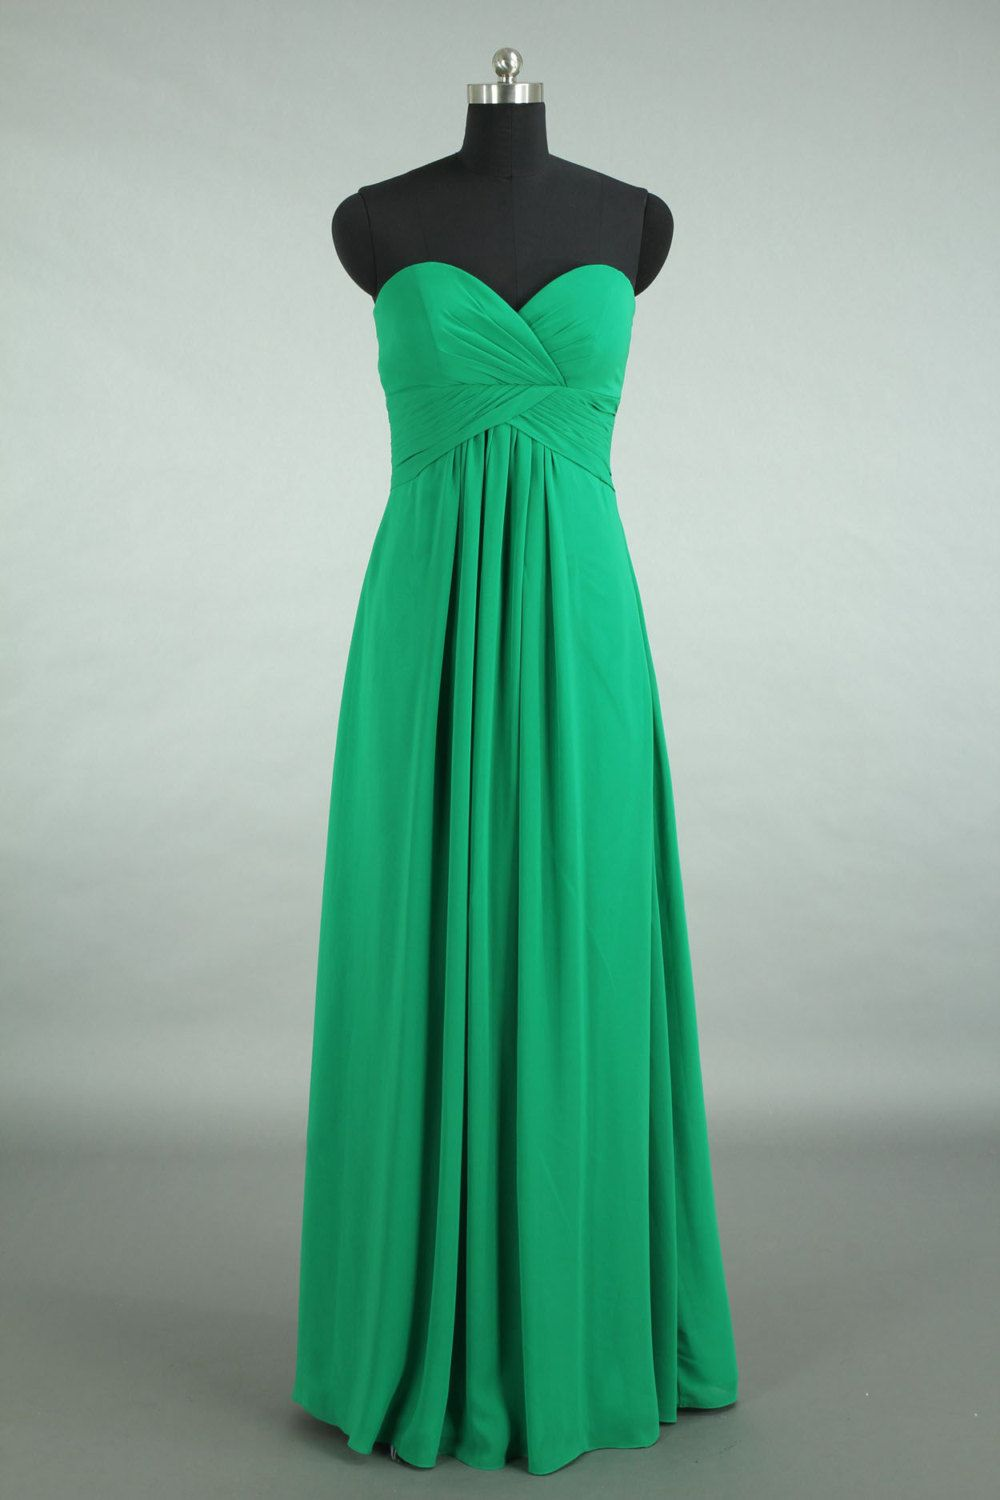 Long Coral Chiffon Bridesmaid Dress Green Sweetheart by DressbLee, $109.00usd 123cad wendy